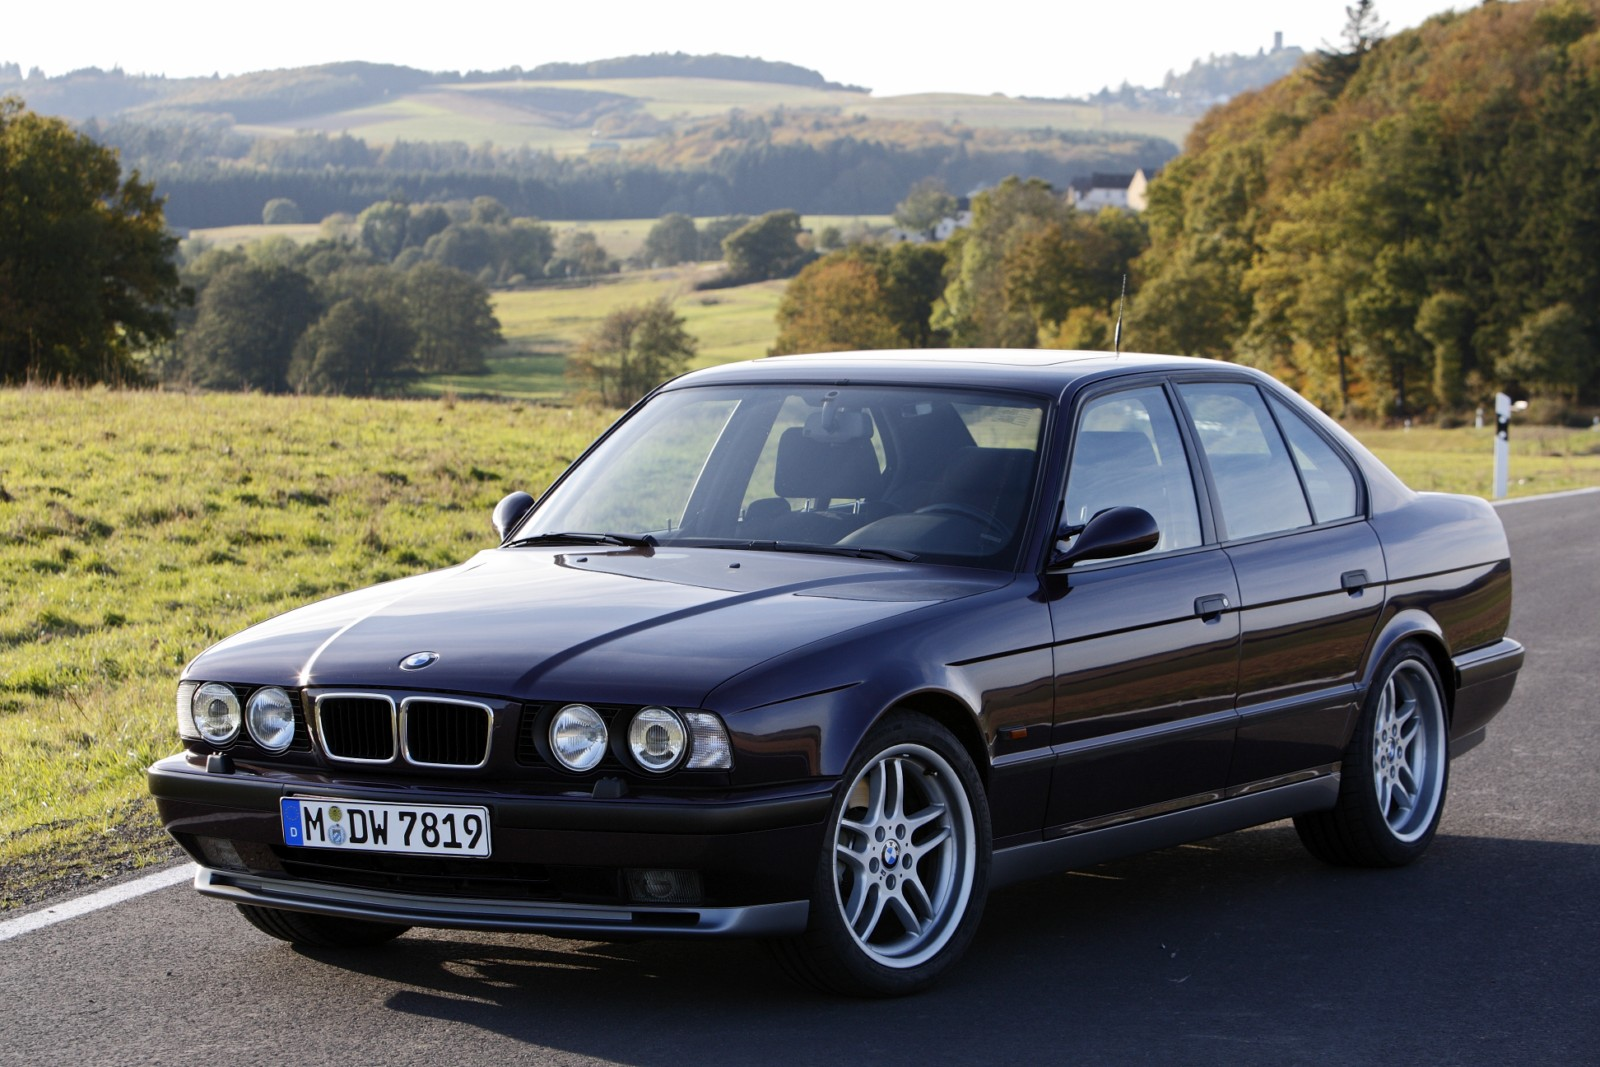 1000+ images about BMW e34 on Pinterest | Bmw m5, Cars and ...